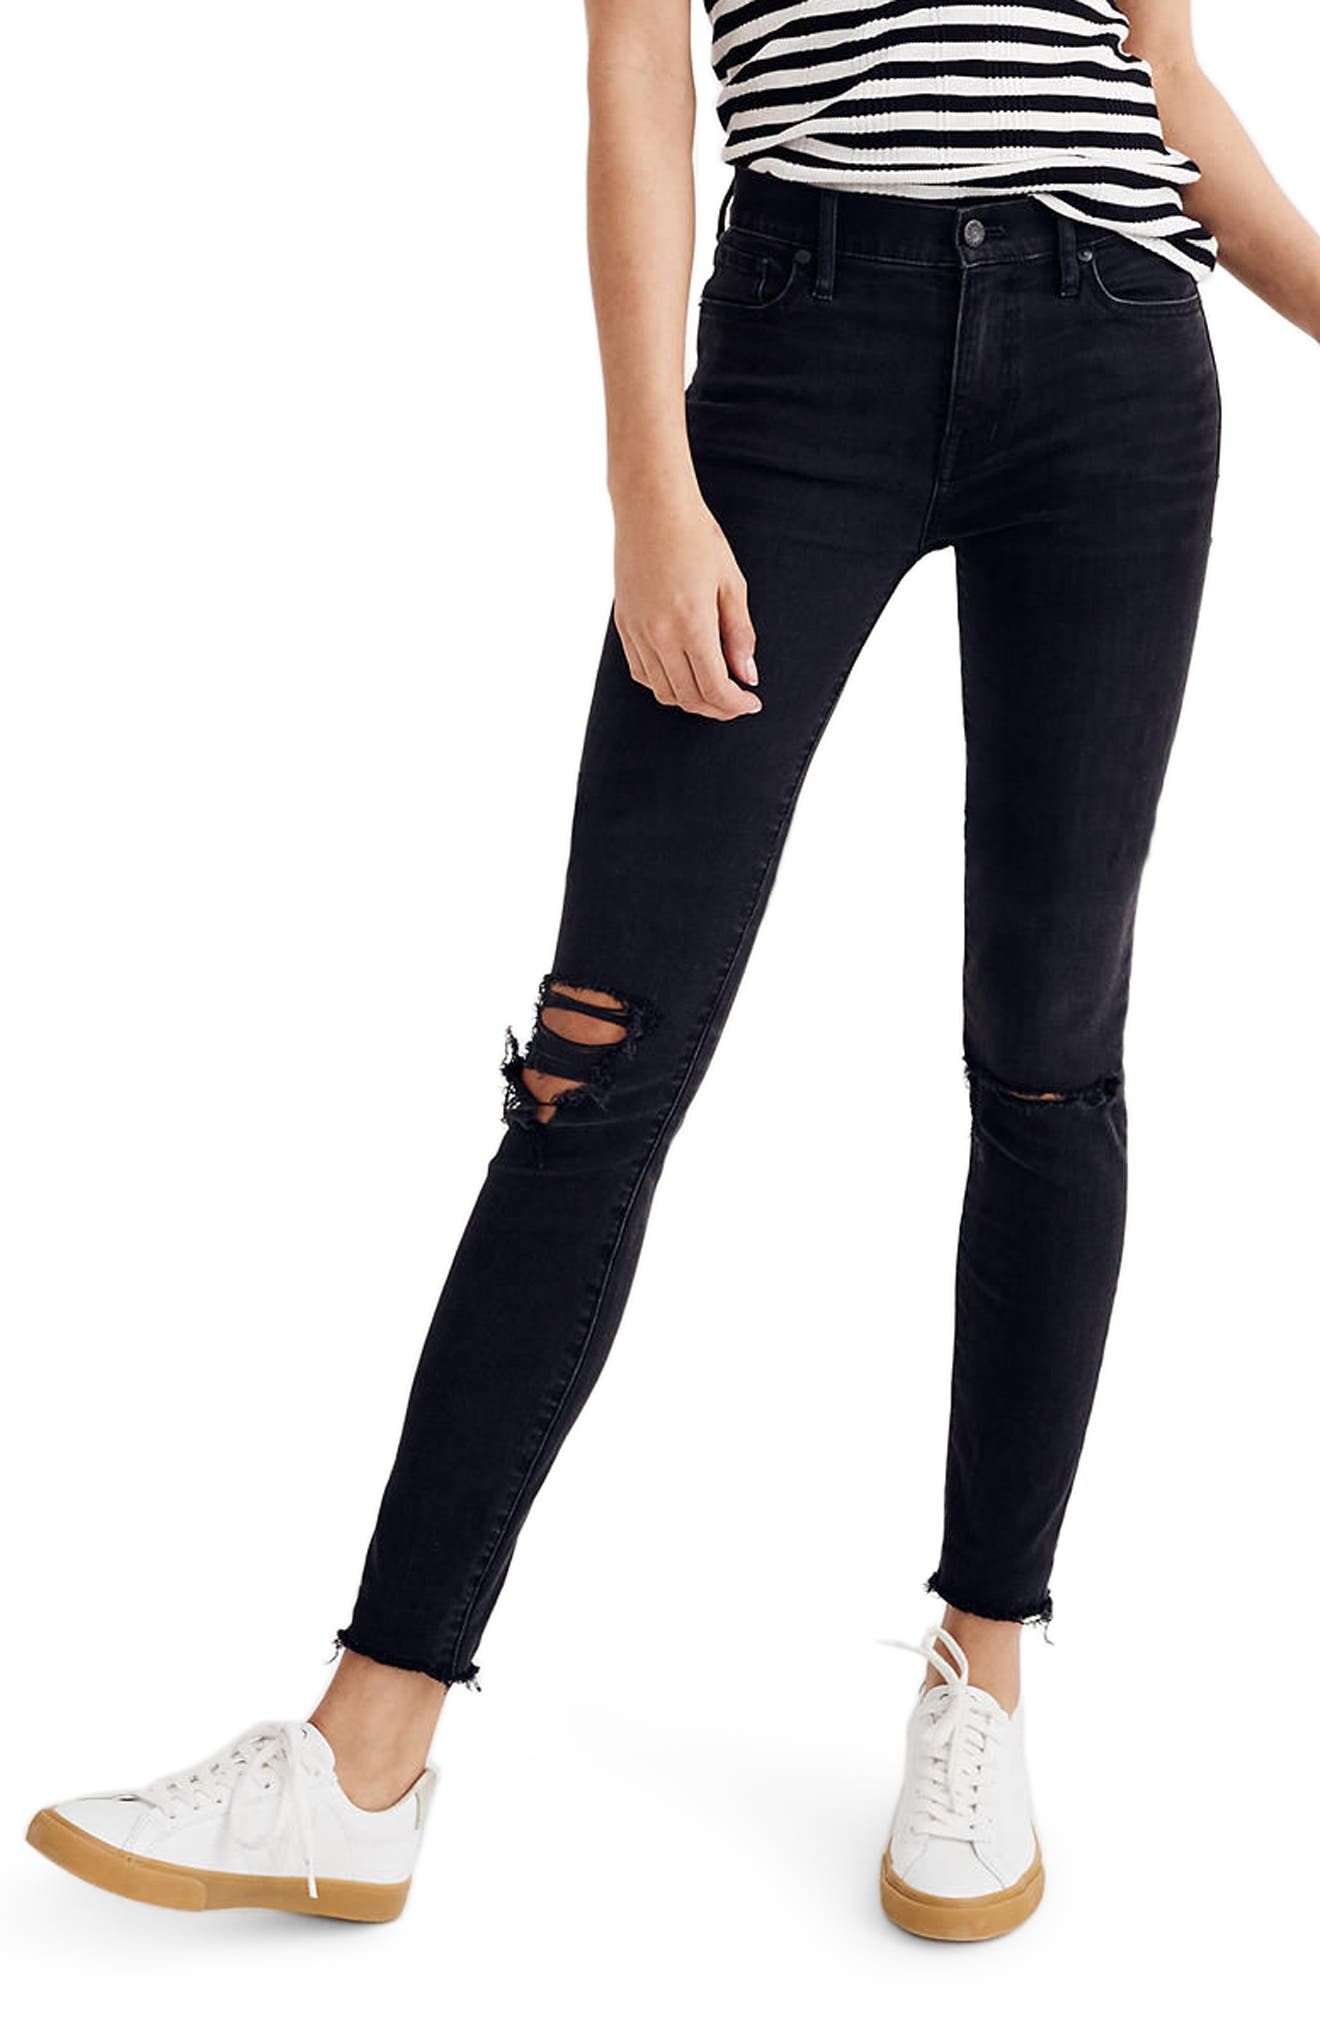 MADEWELL, 9-Inch High Waist Skinny Jeans, Main thumbnail 1, color, BLACK SEA